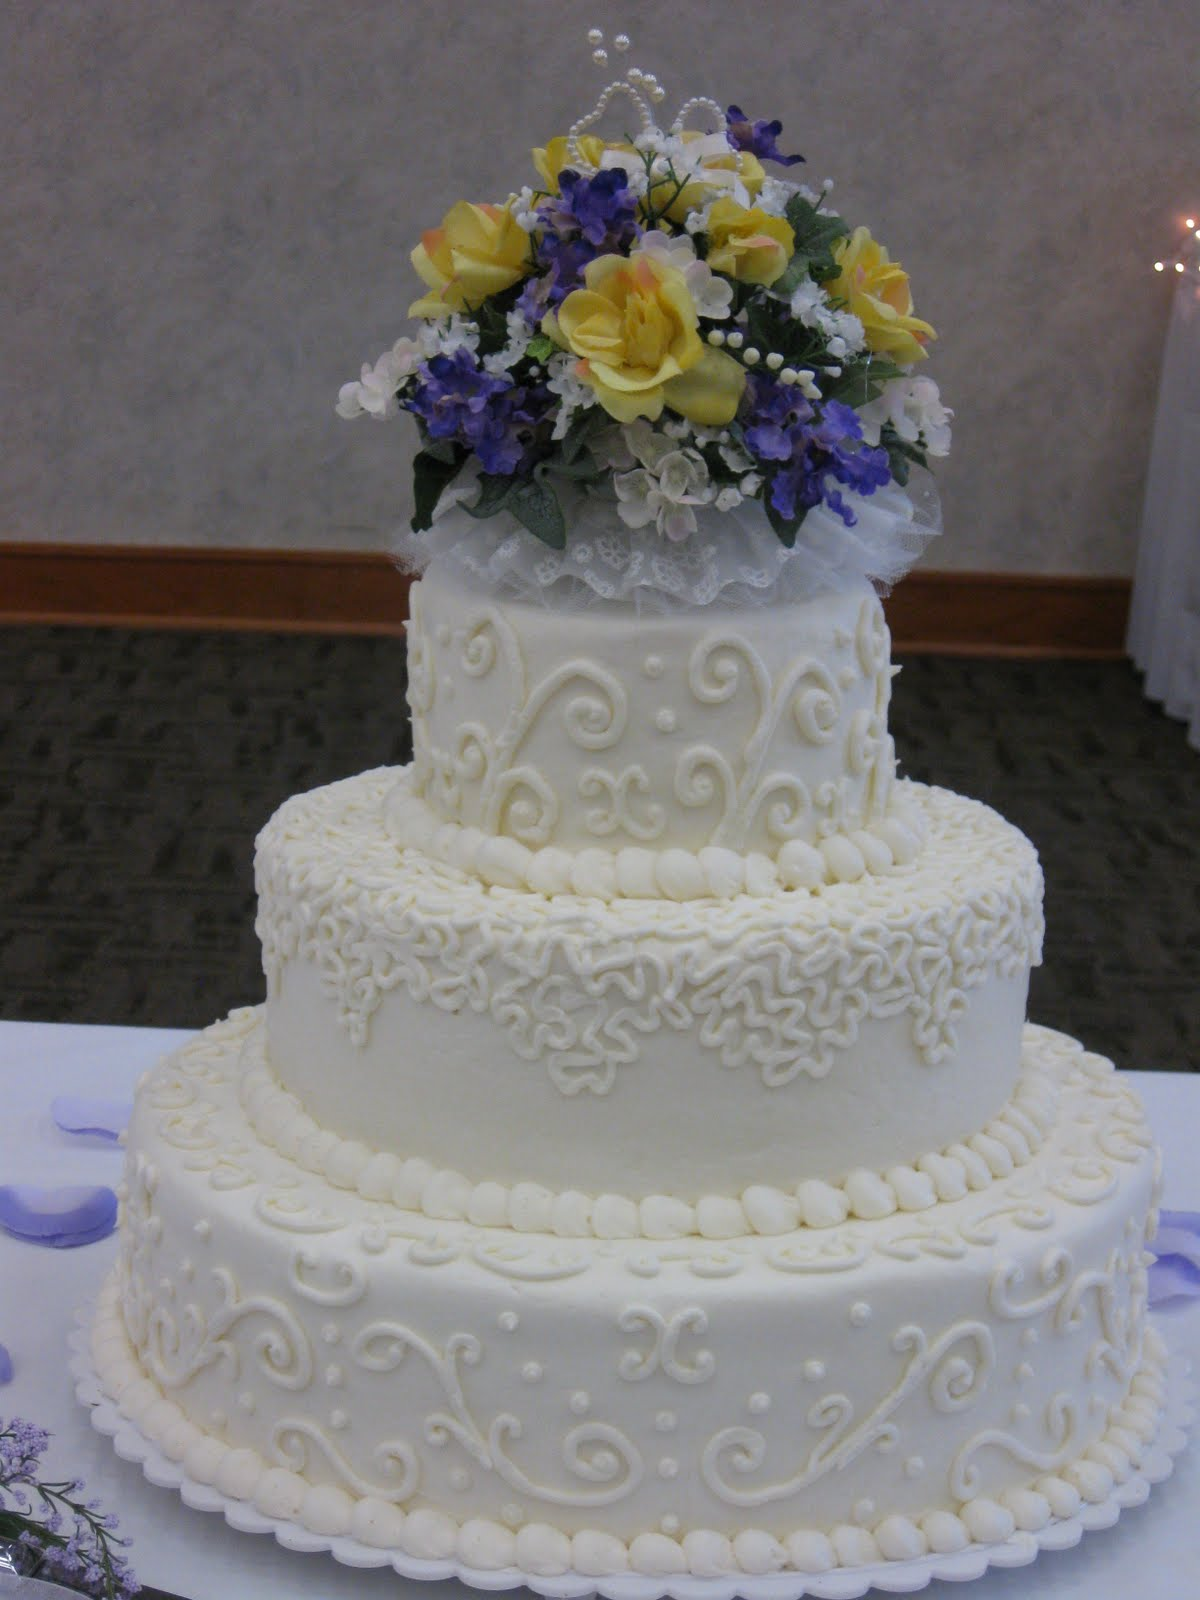 Wedding Anniversary Cakes - Tyler Living